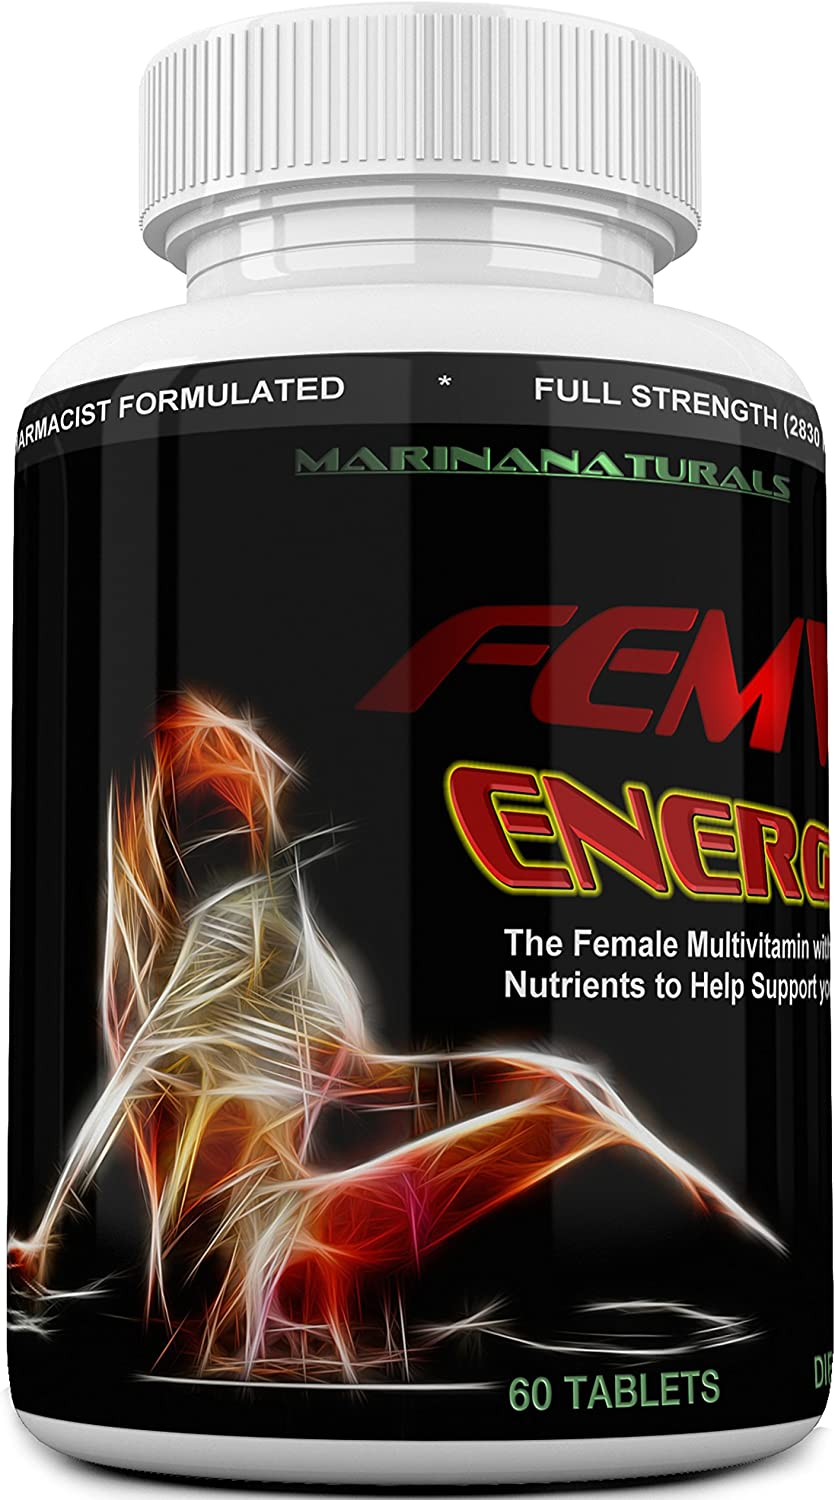 FEMVIT Energy Booster The Female Multivitamin, Multi-Minerals and Herbal Extracts That Helps Enhance Your Energy and Focus Too. 60 Tablets